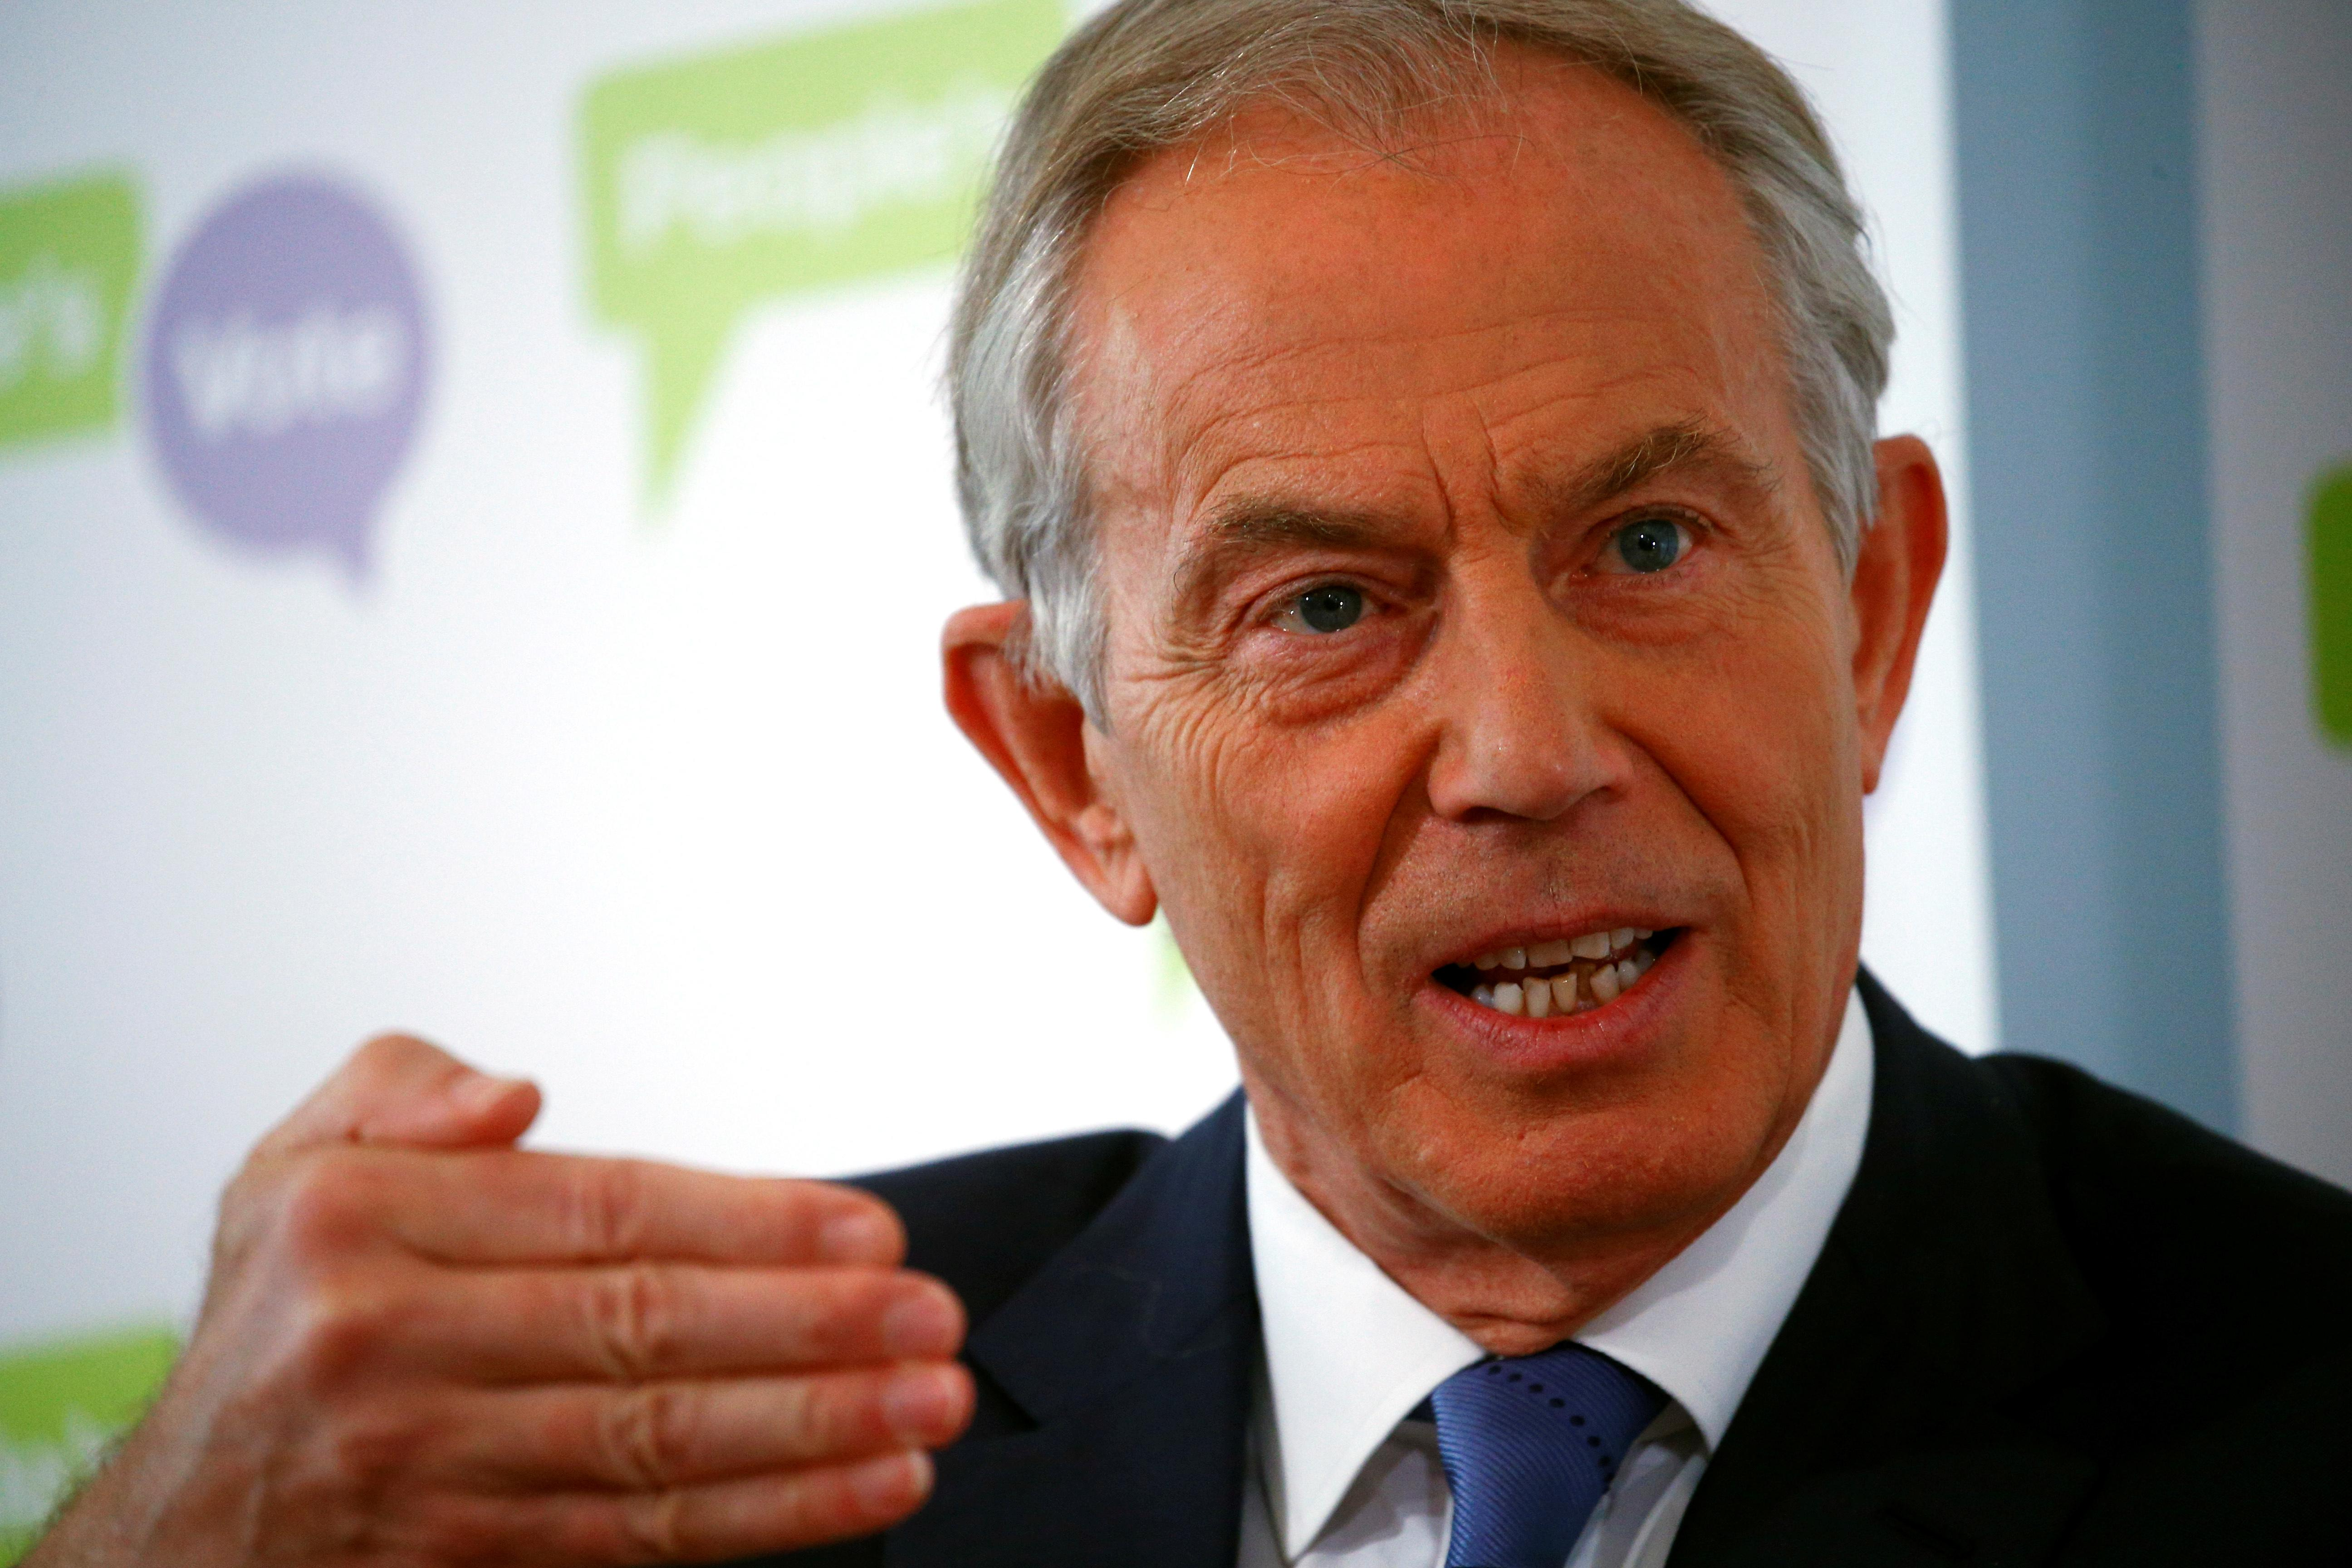 Tony Blair on the 'dire state' of British politics, Brexit, and 'extraordinary' election spending plans - Yahoo Finance UK